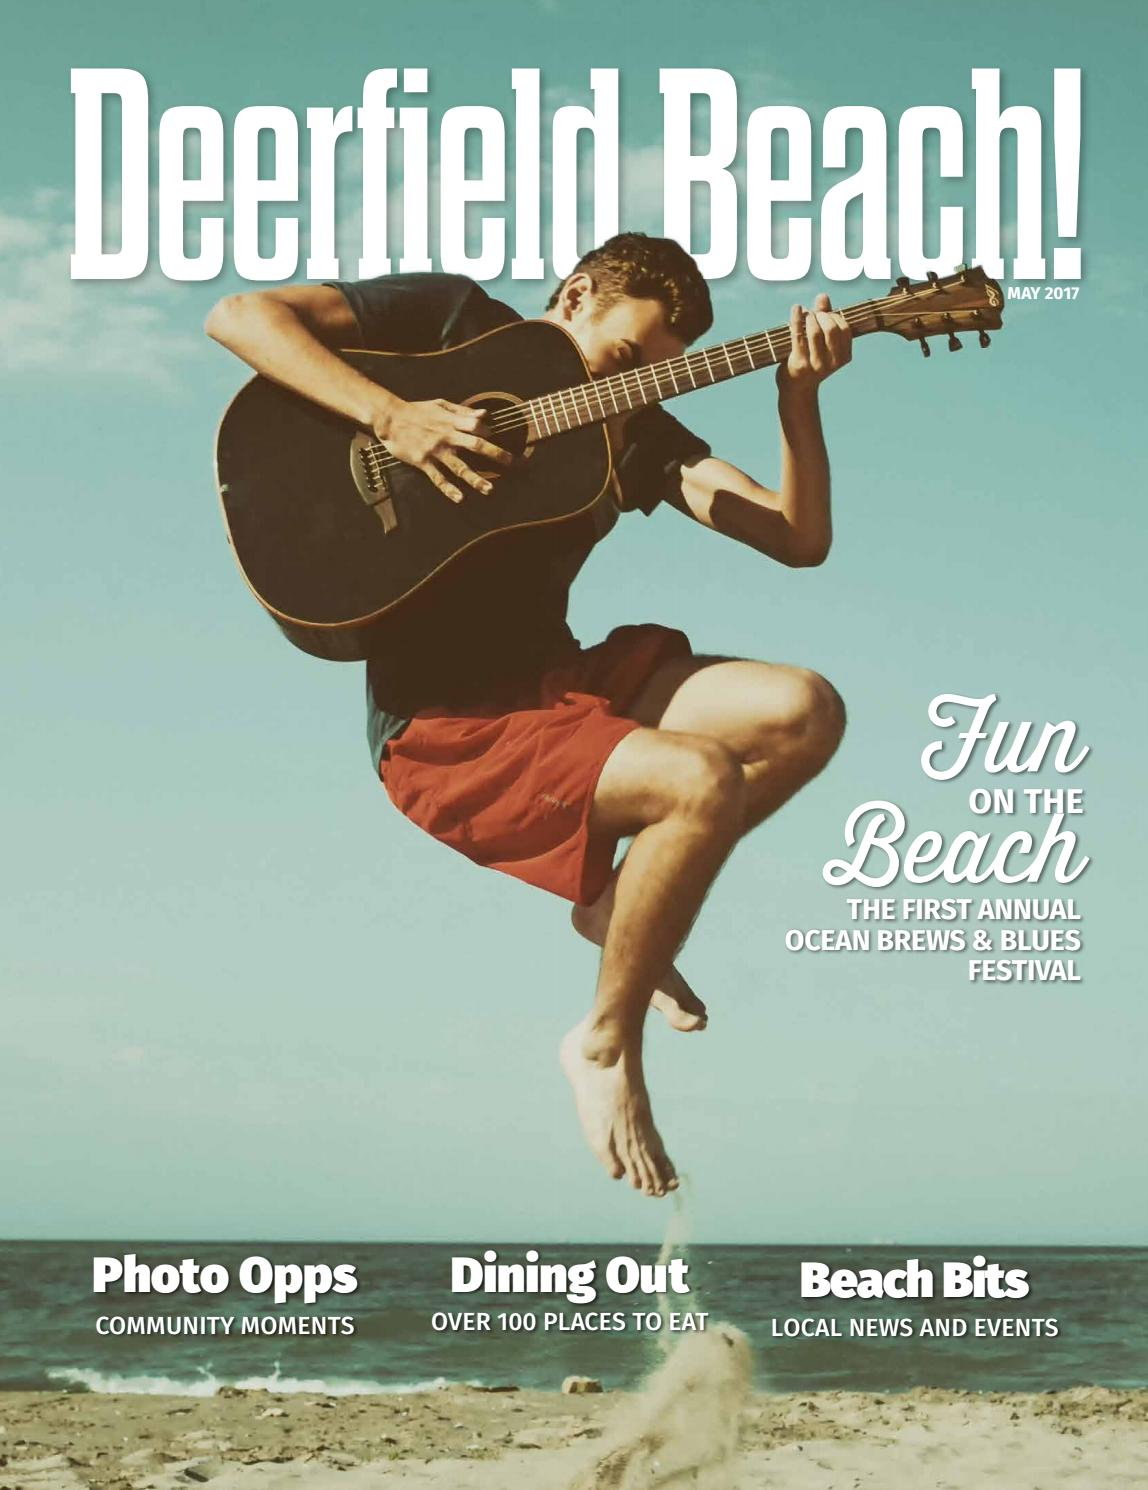 Deerfield Beach! Magazine May 2017 by Point! Publishing - issuu